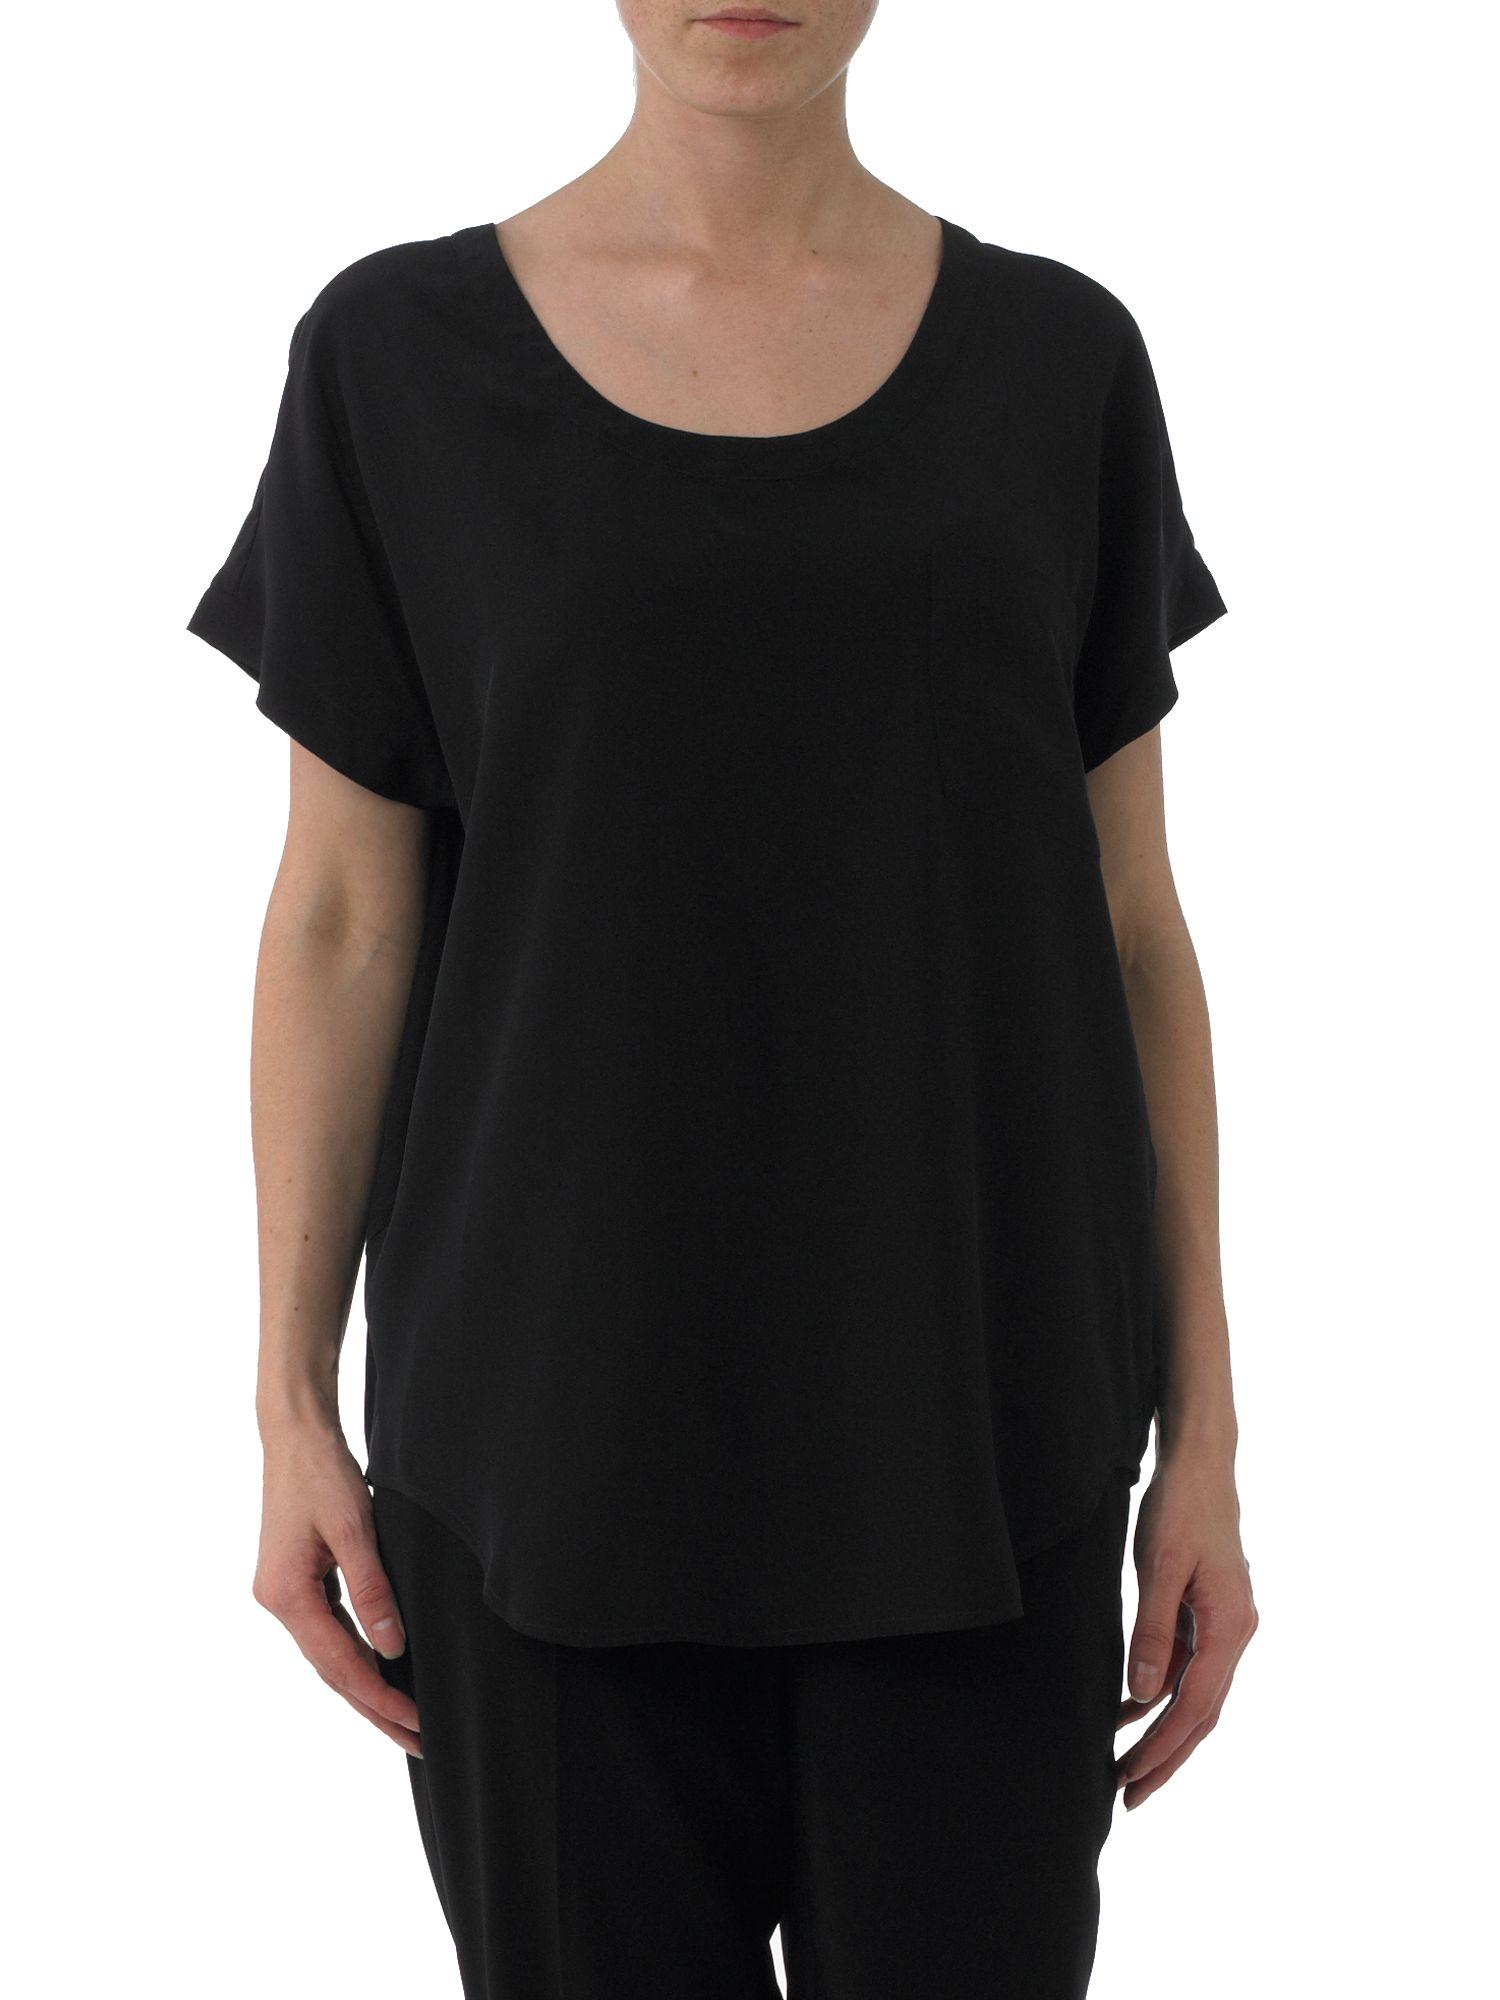 Kenneth Cole Oversized silk tee Black product image